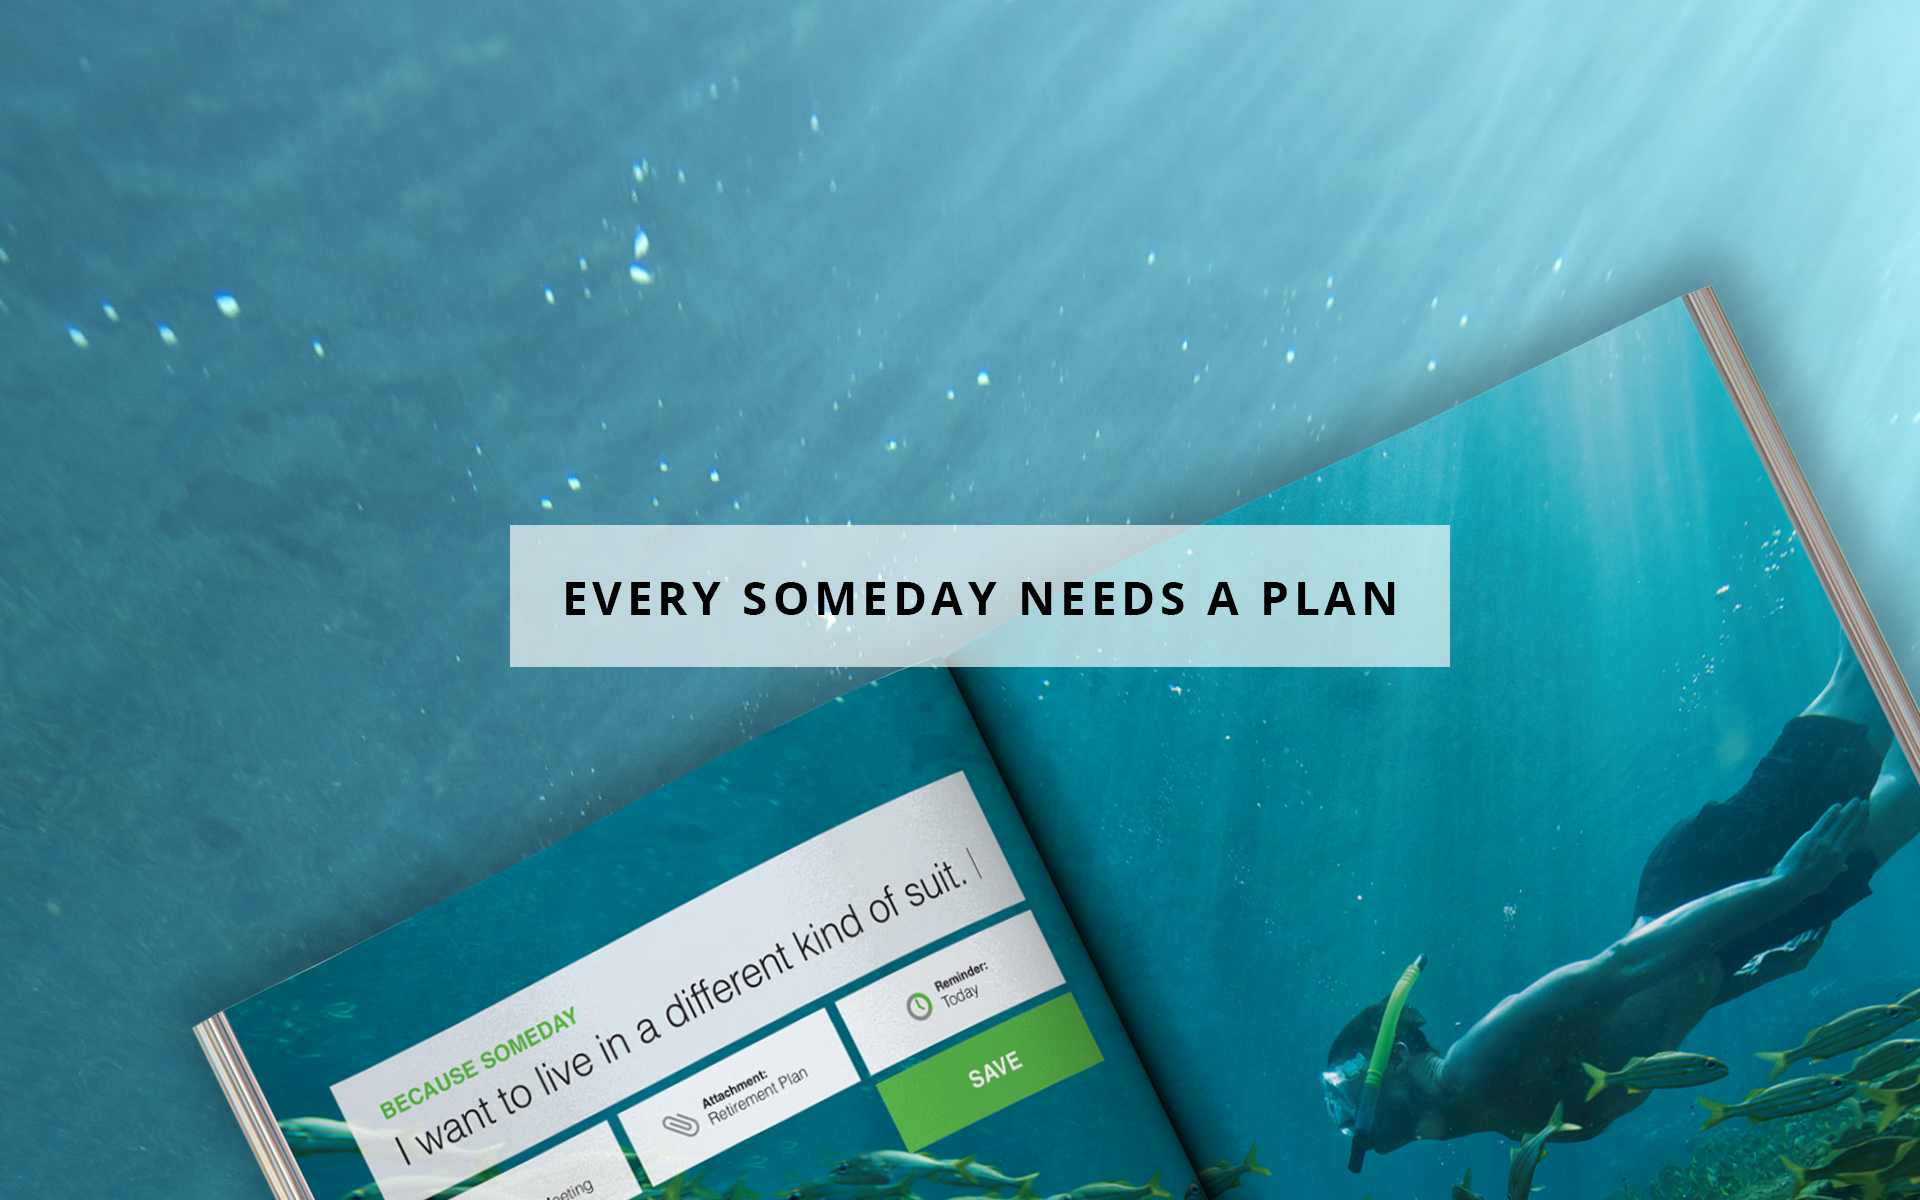 Every Someday Needs A Plan